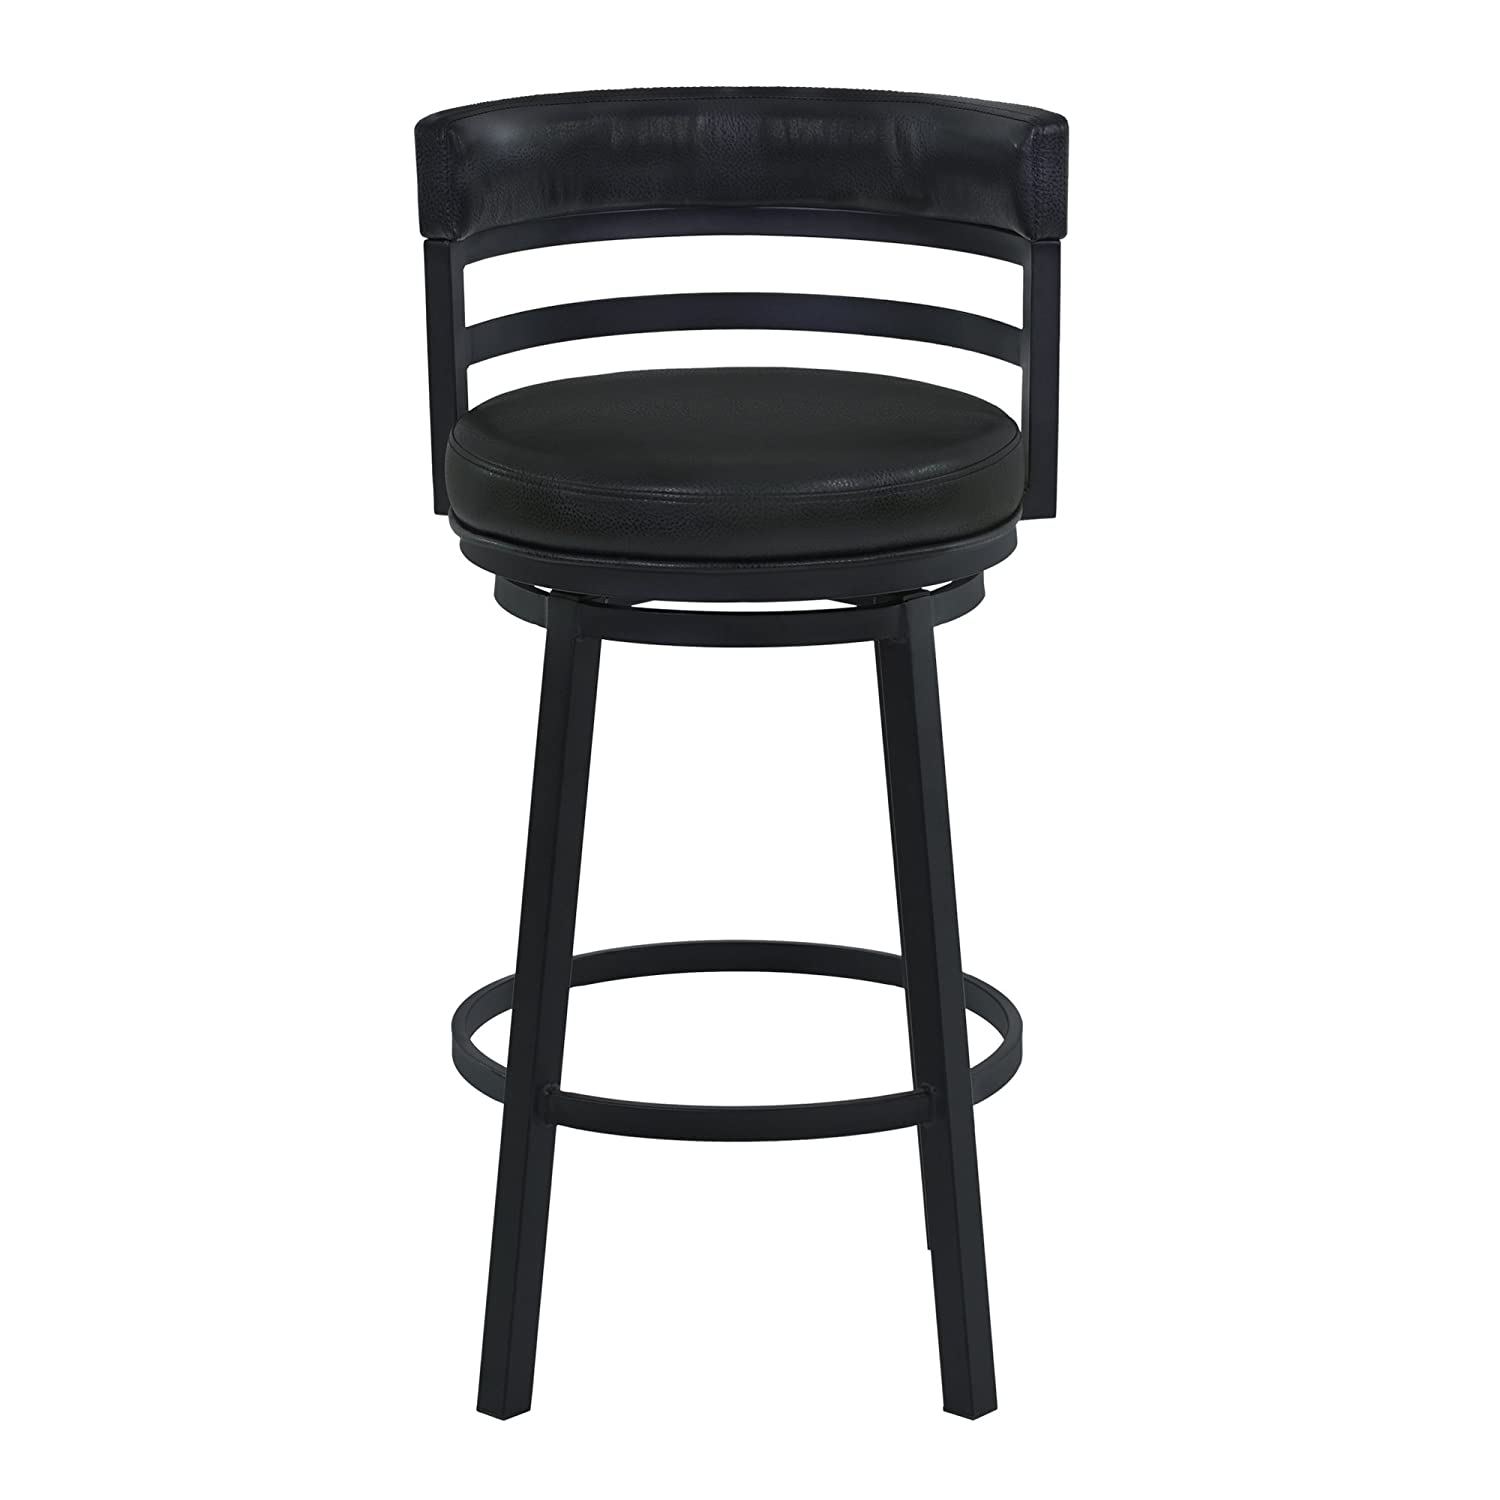 Armen Living LCMABABLBL26 Madrid 26 Counter Height Swivel Barstool in Ford Black Faux Leather and Black Metal Finish